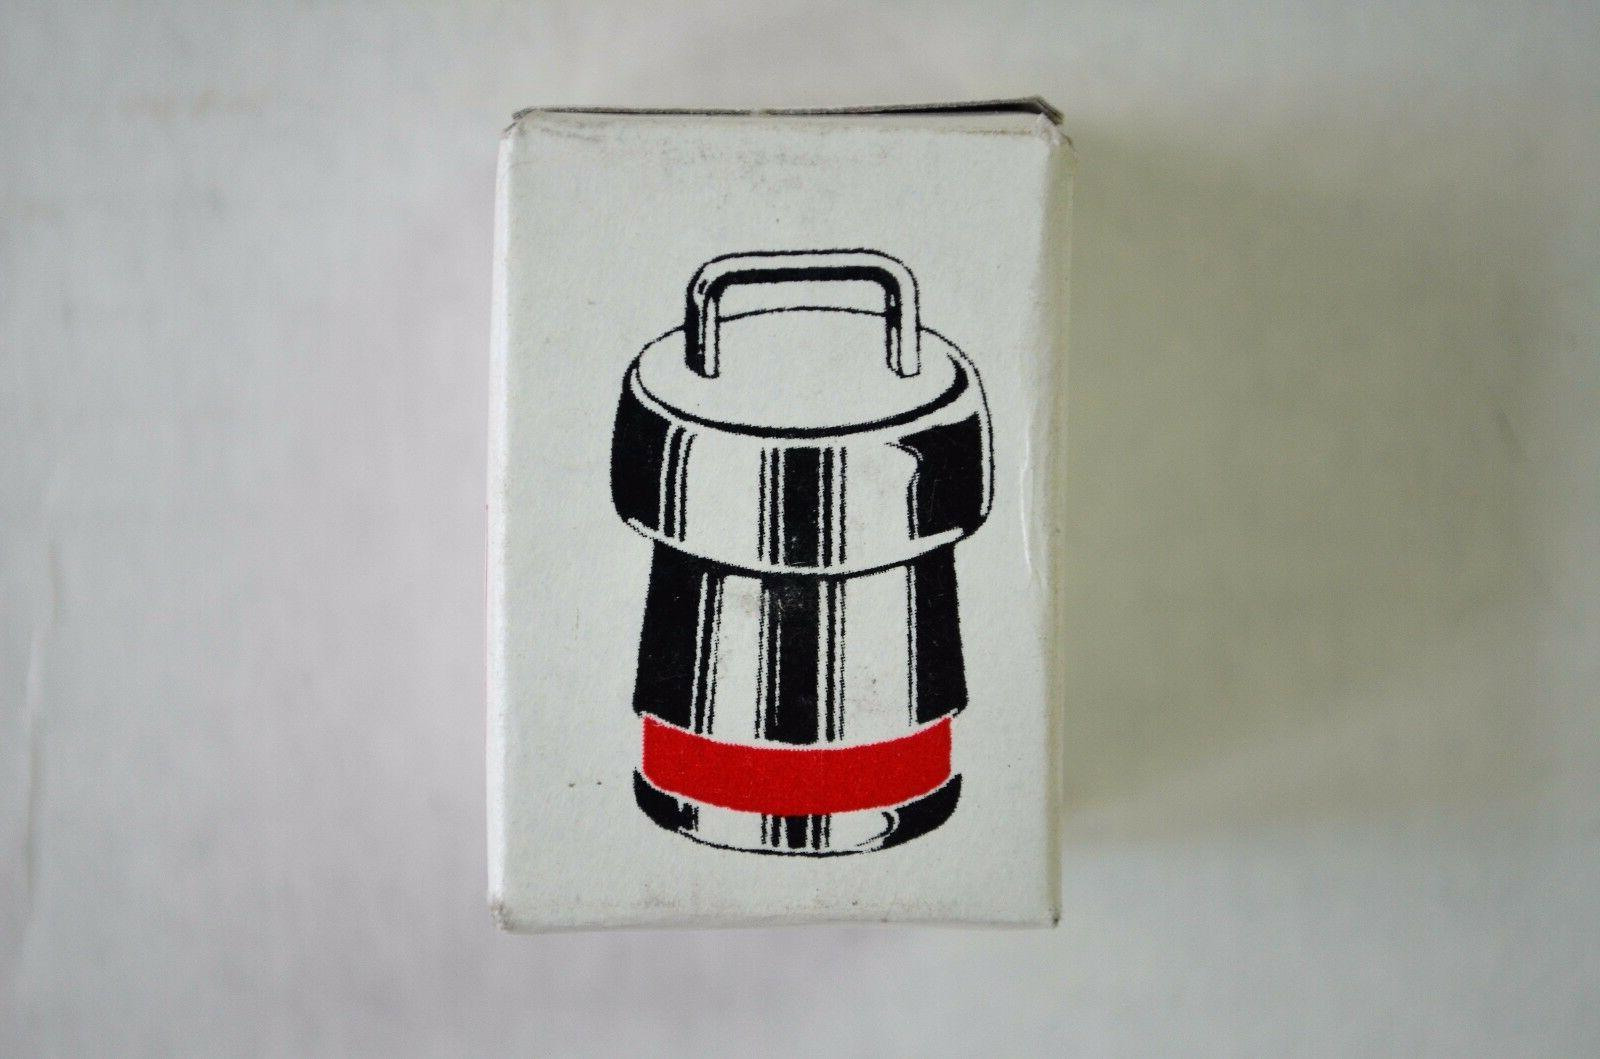 Hawkins Cooker Vent Weight Assembly Older Classic Stainless Steel Red